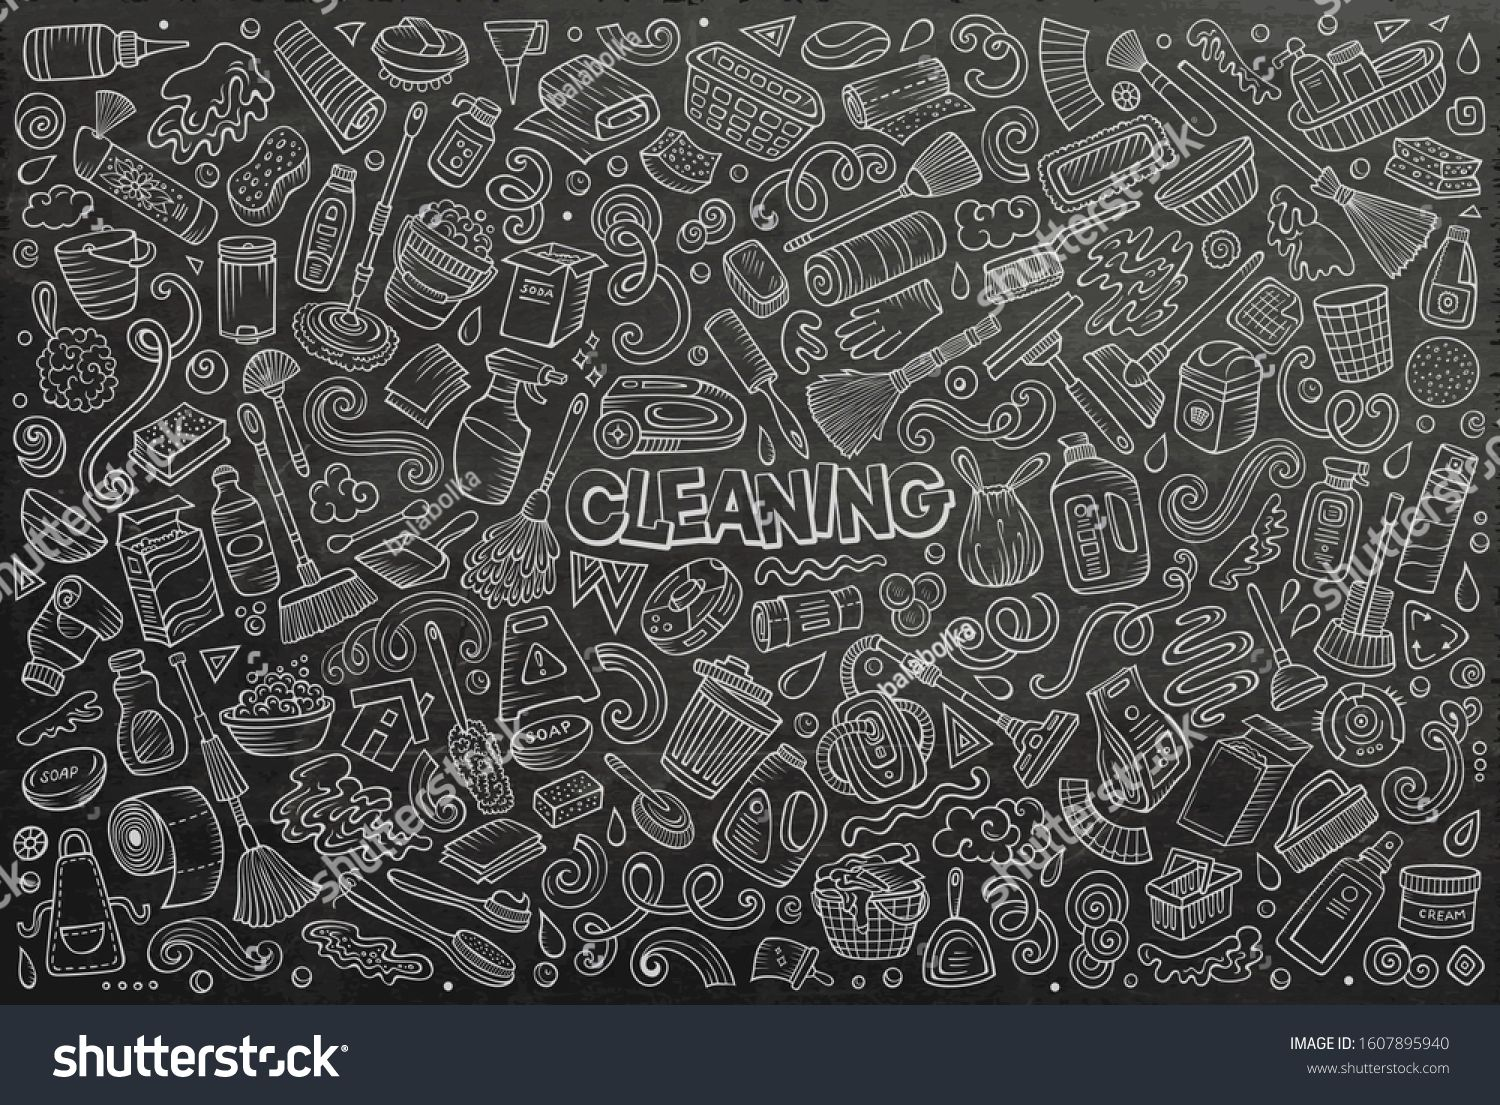 Line art vector hand drawn doodle cartoon set of Cleaning theme items, objects and symbols #Sponsored , #Ad, #hand#drawn#doodle#Line